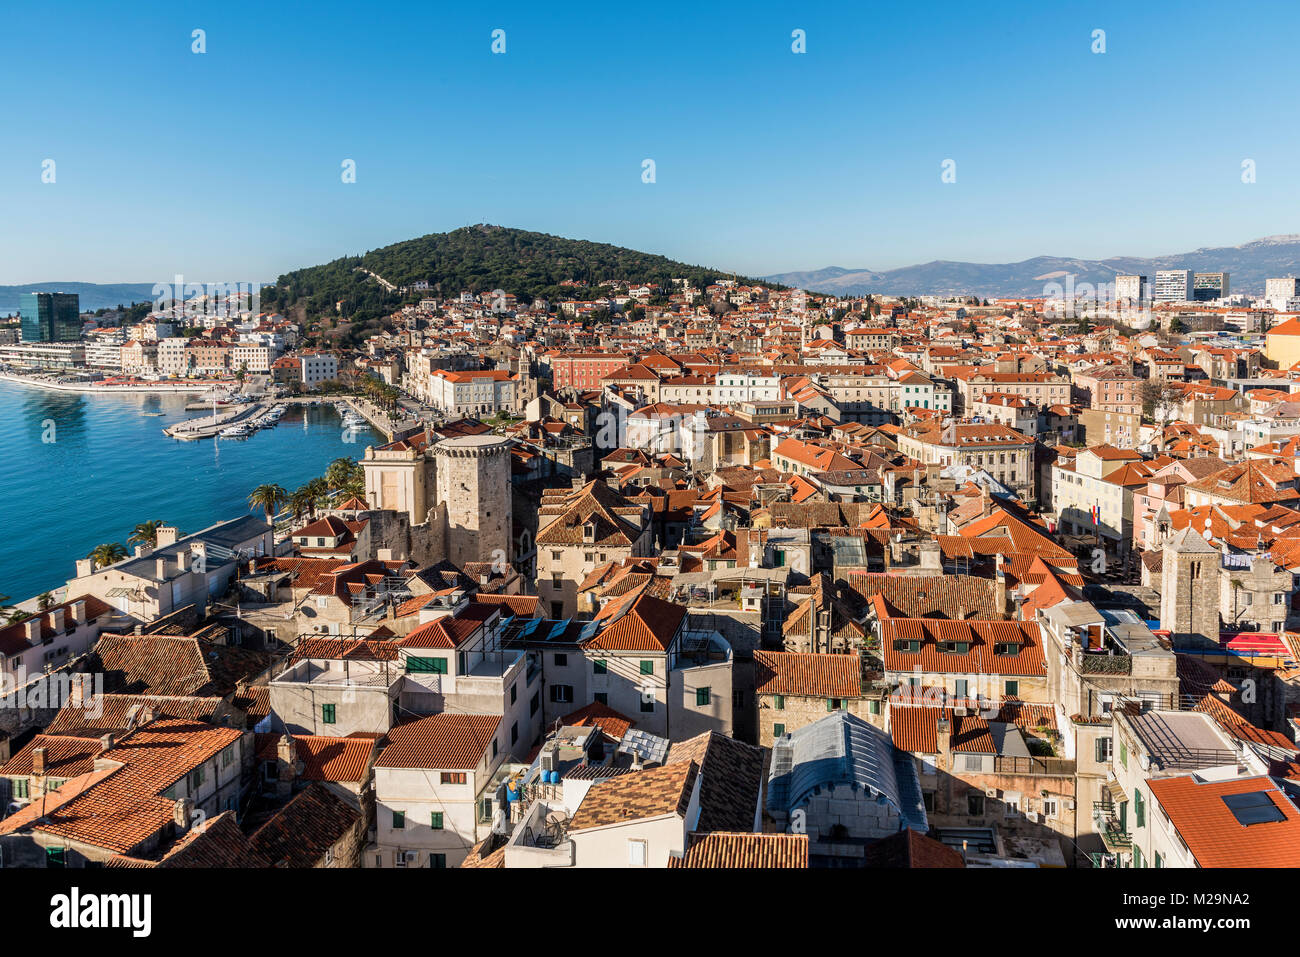 Old town skyline, Split, Dalmatia, Croatia - Stock Image